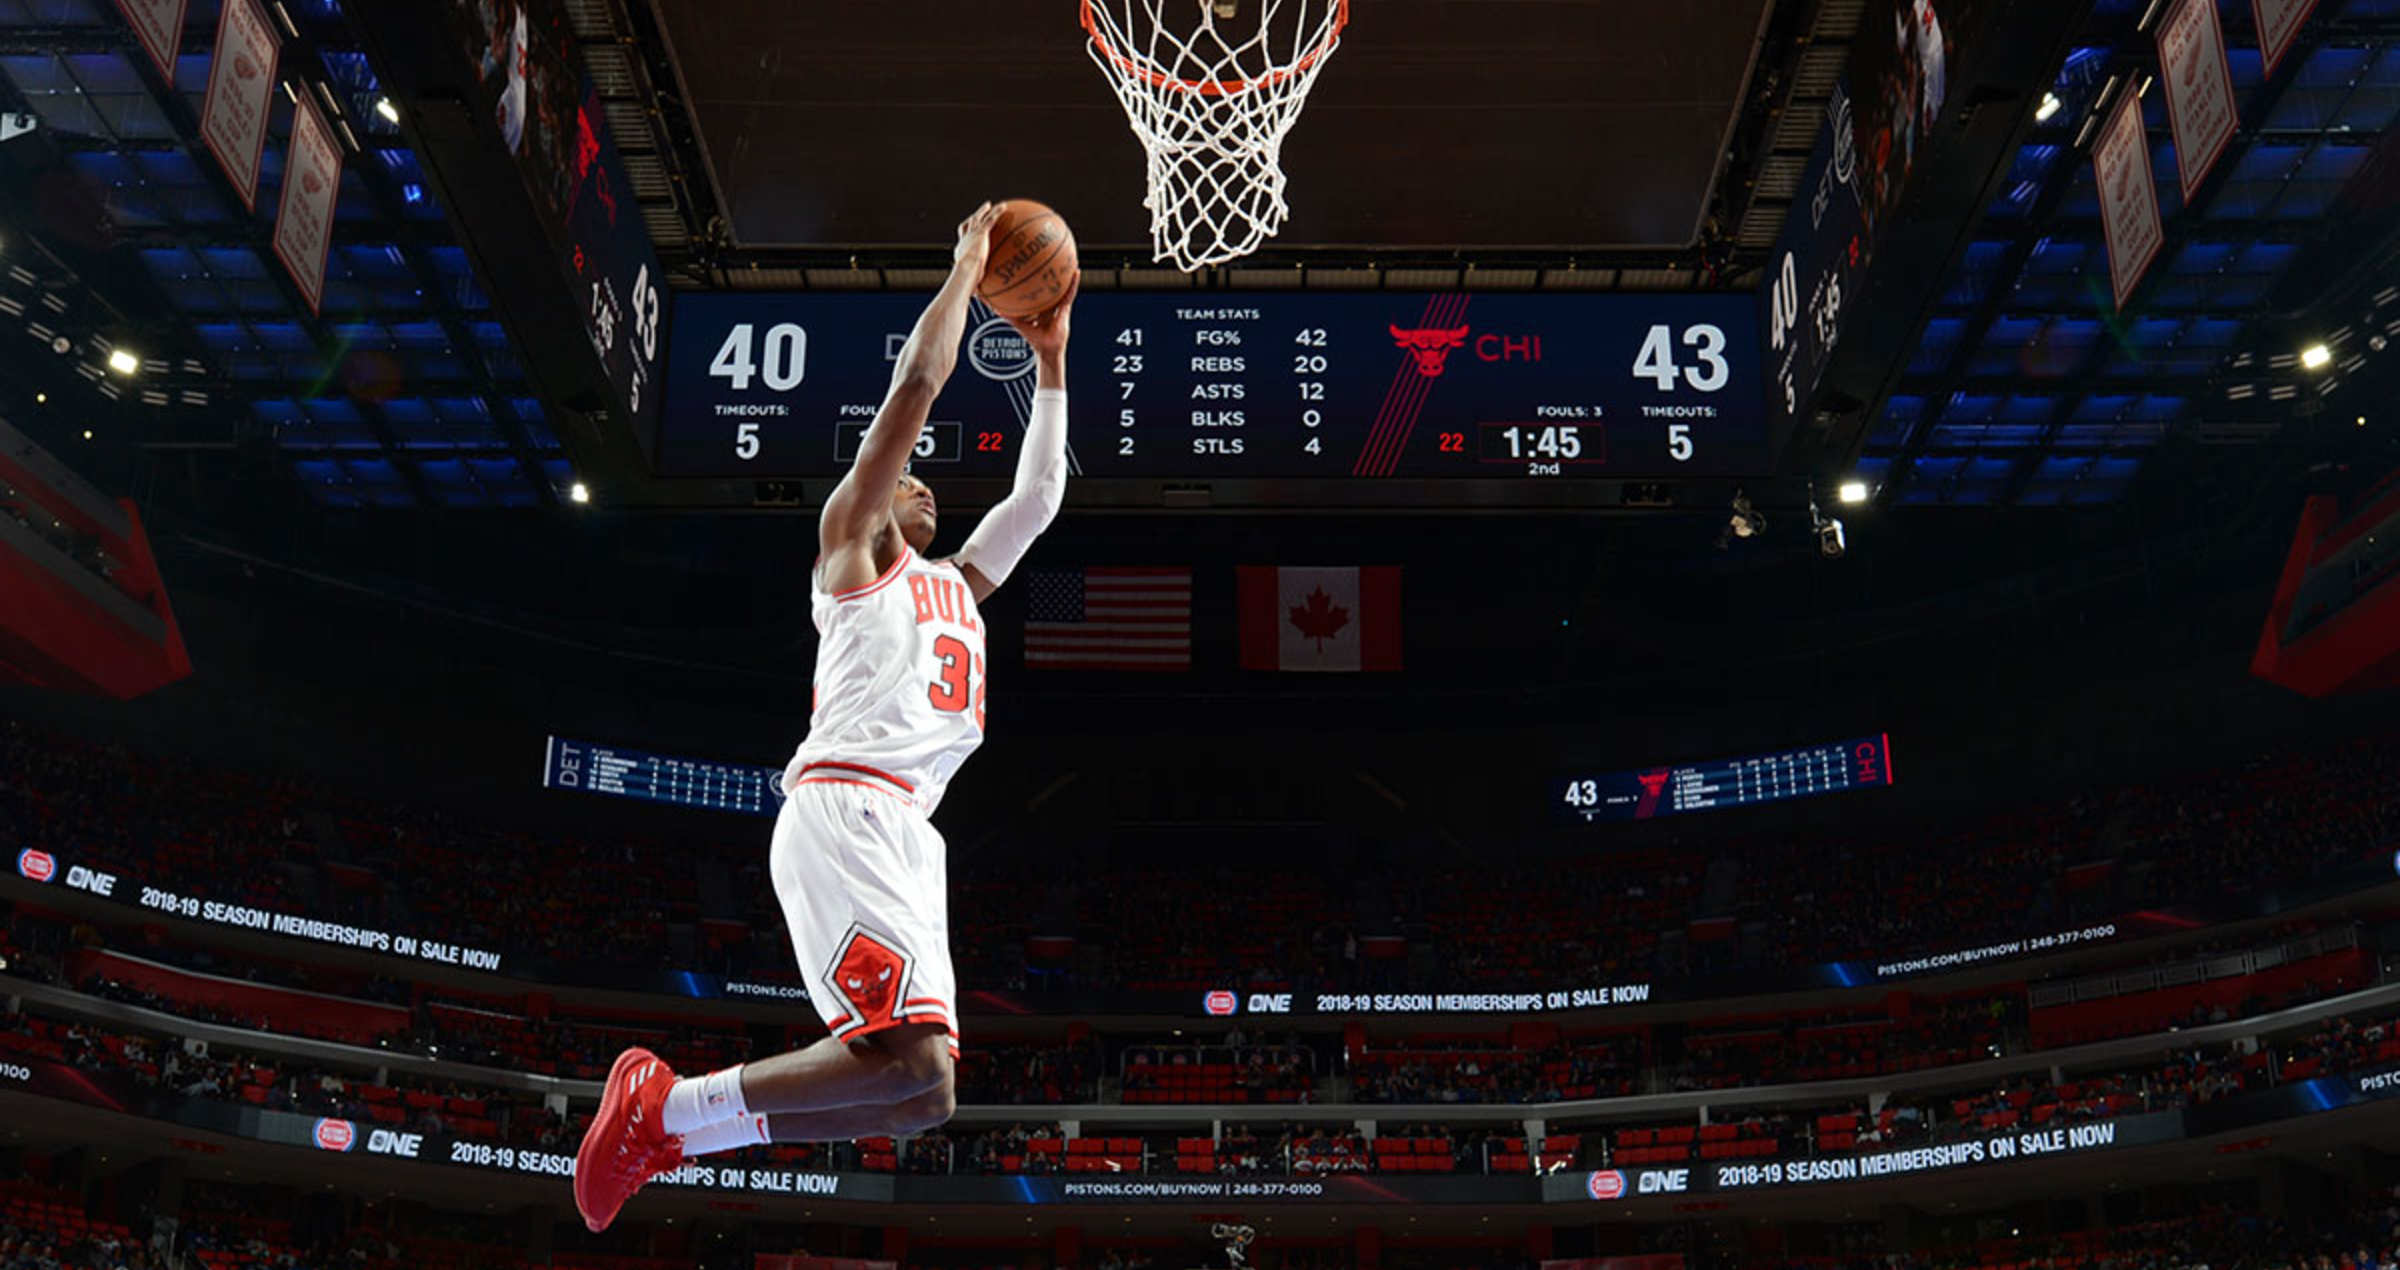 What Was The Score Of The Bulls Game Tonight | All Basketball Scores Info